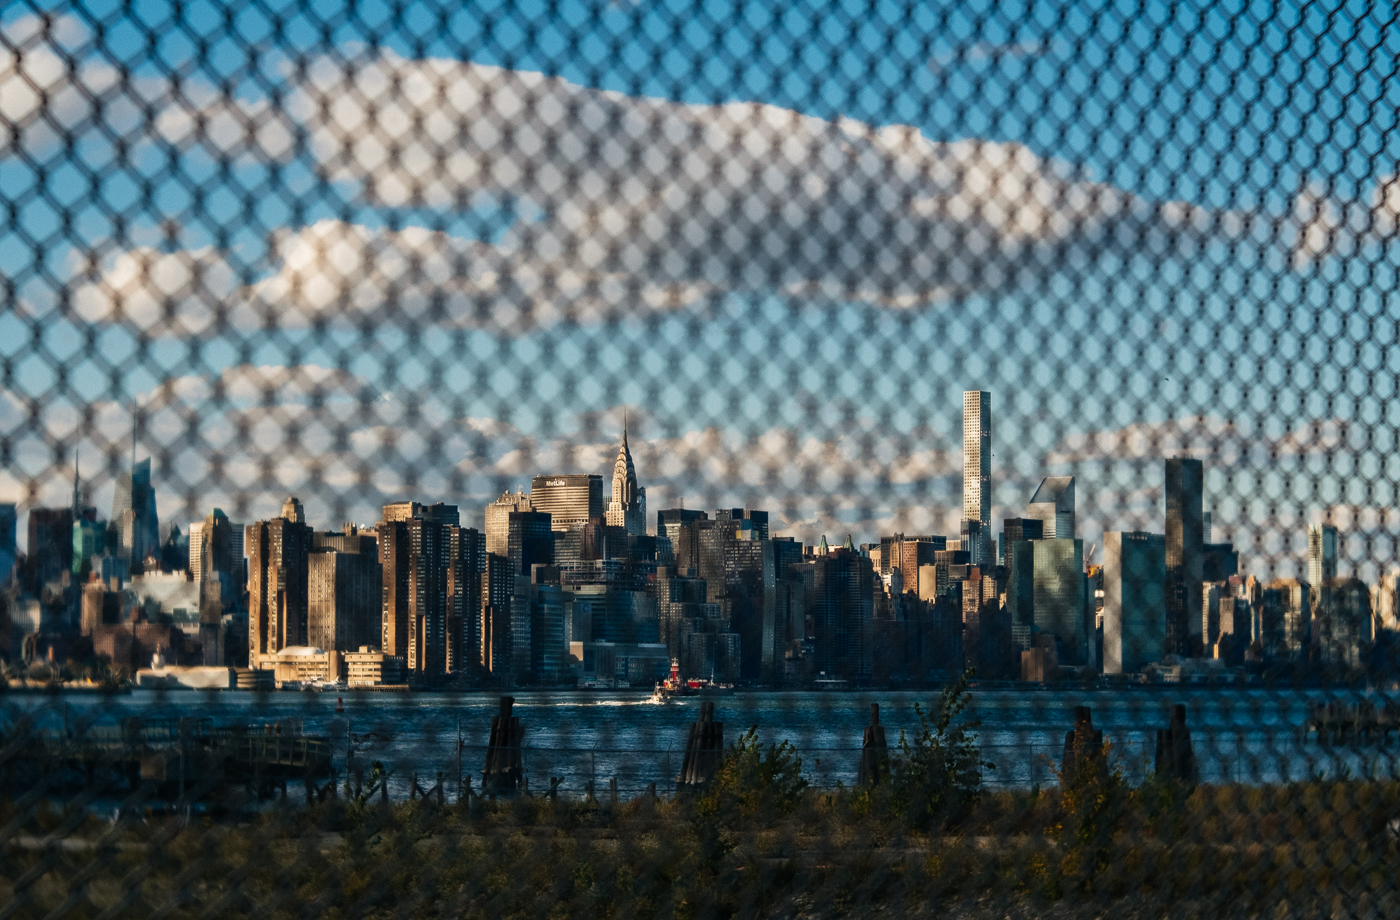 Chain Mesh Fence